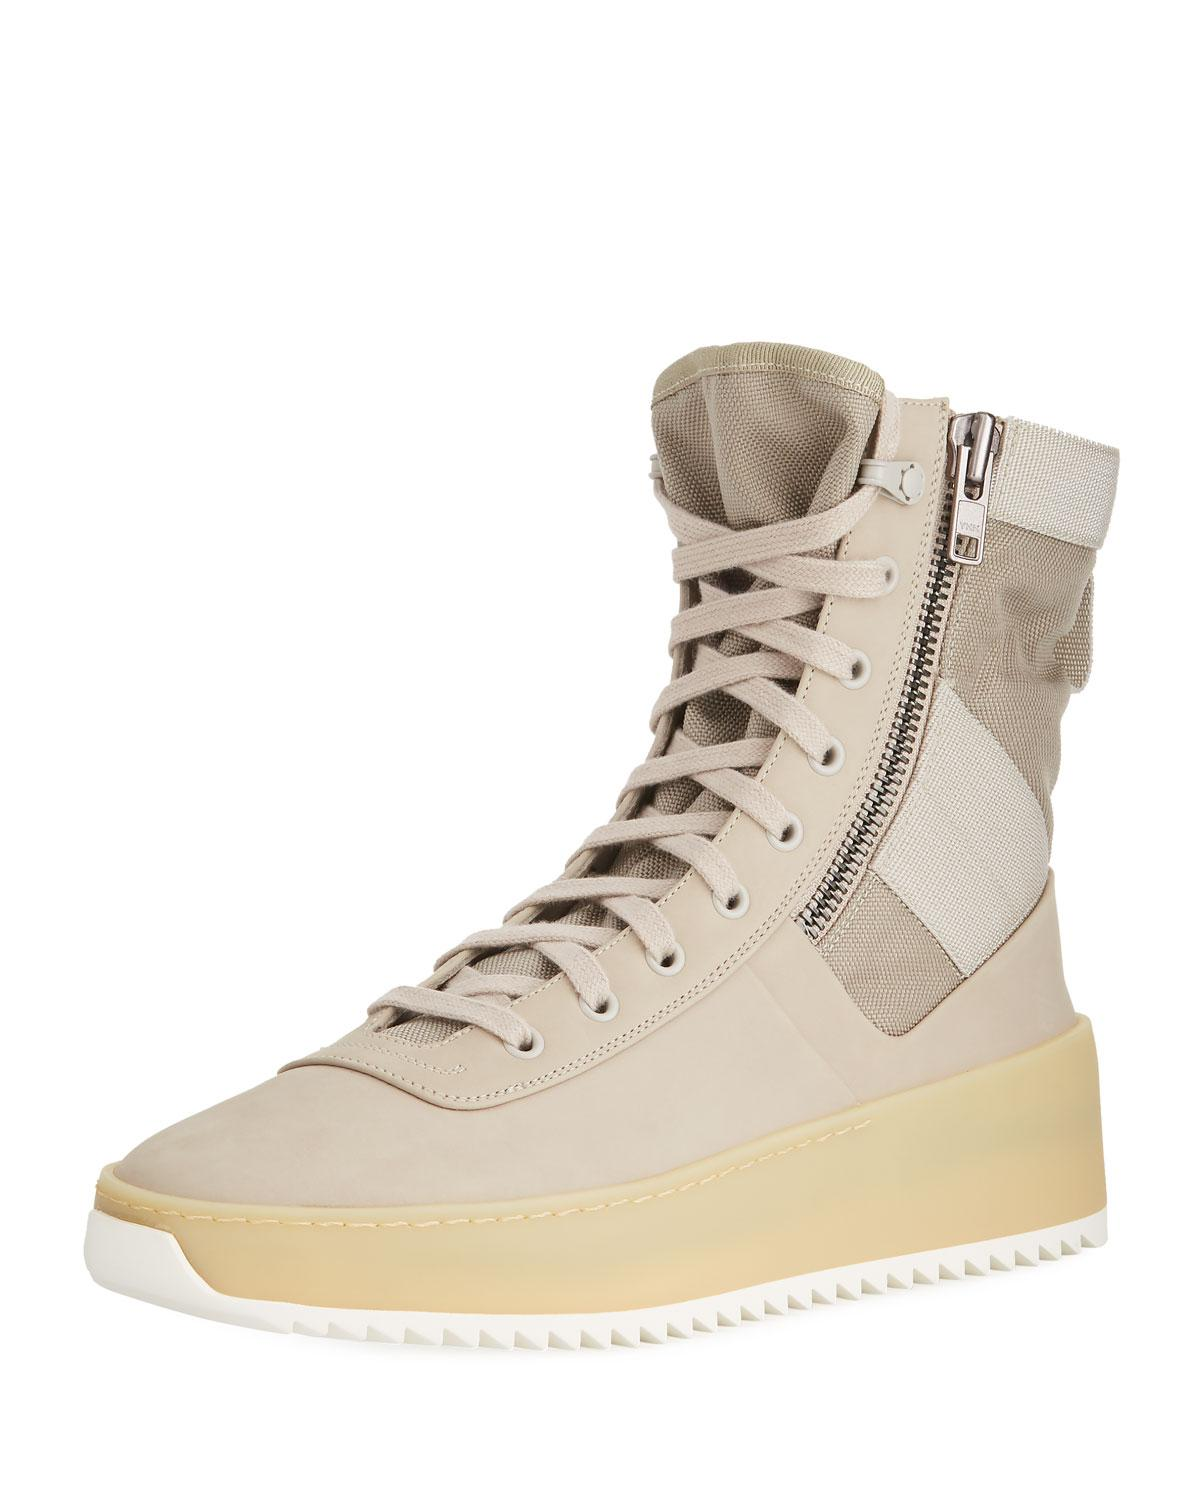 fear of god military shoes